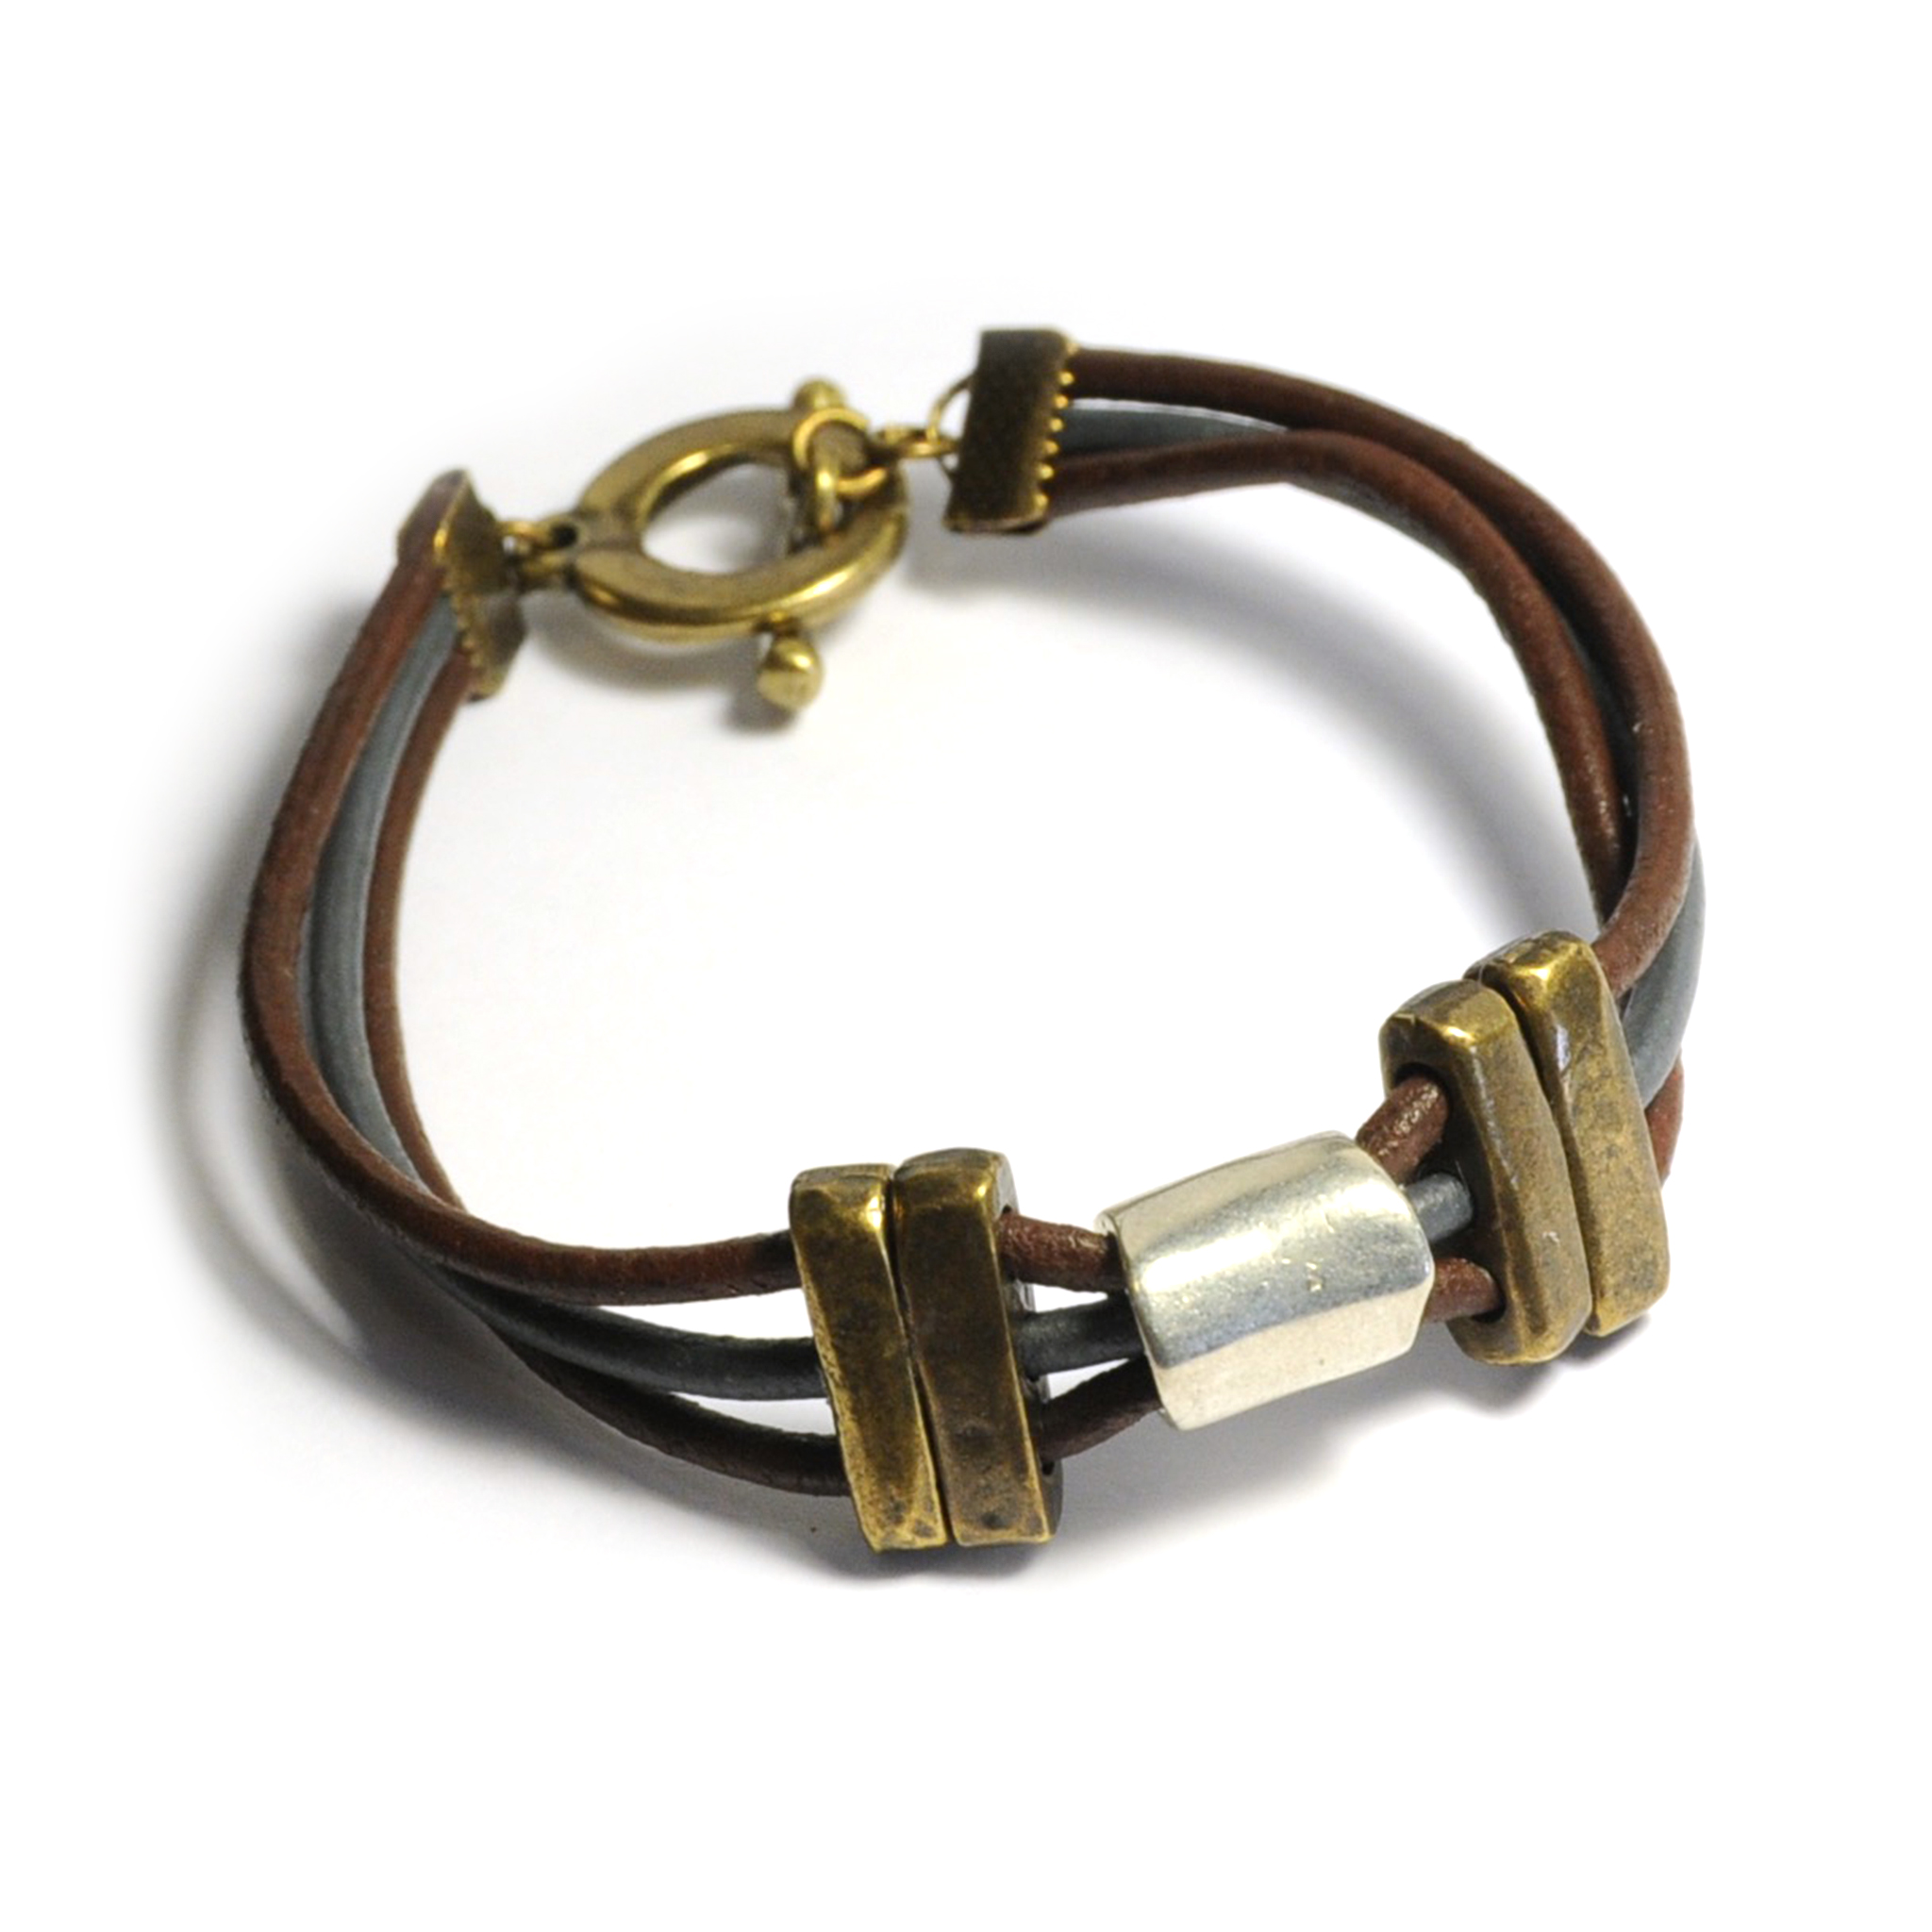 Leather bracelet threaded through antique brass metal and elegant silver feature